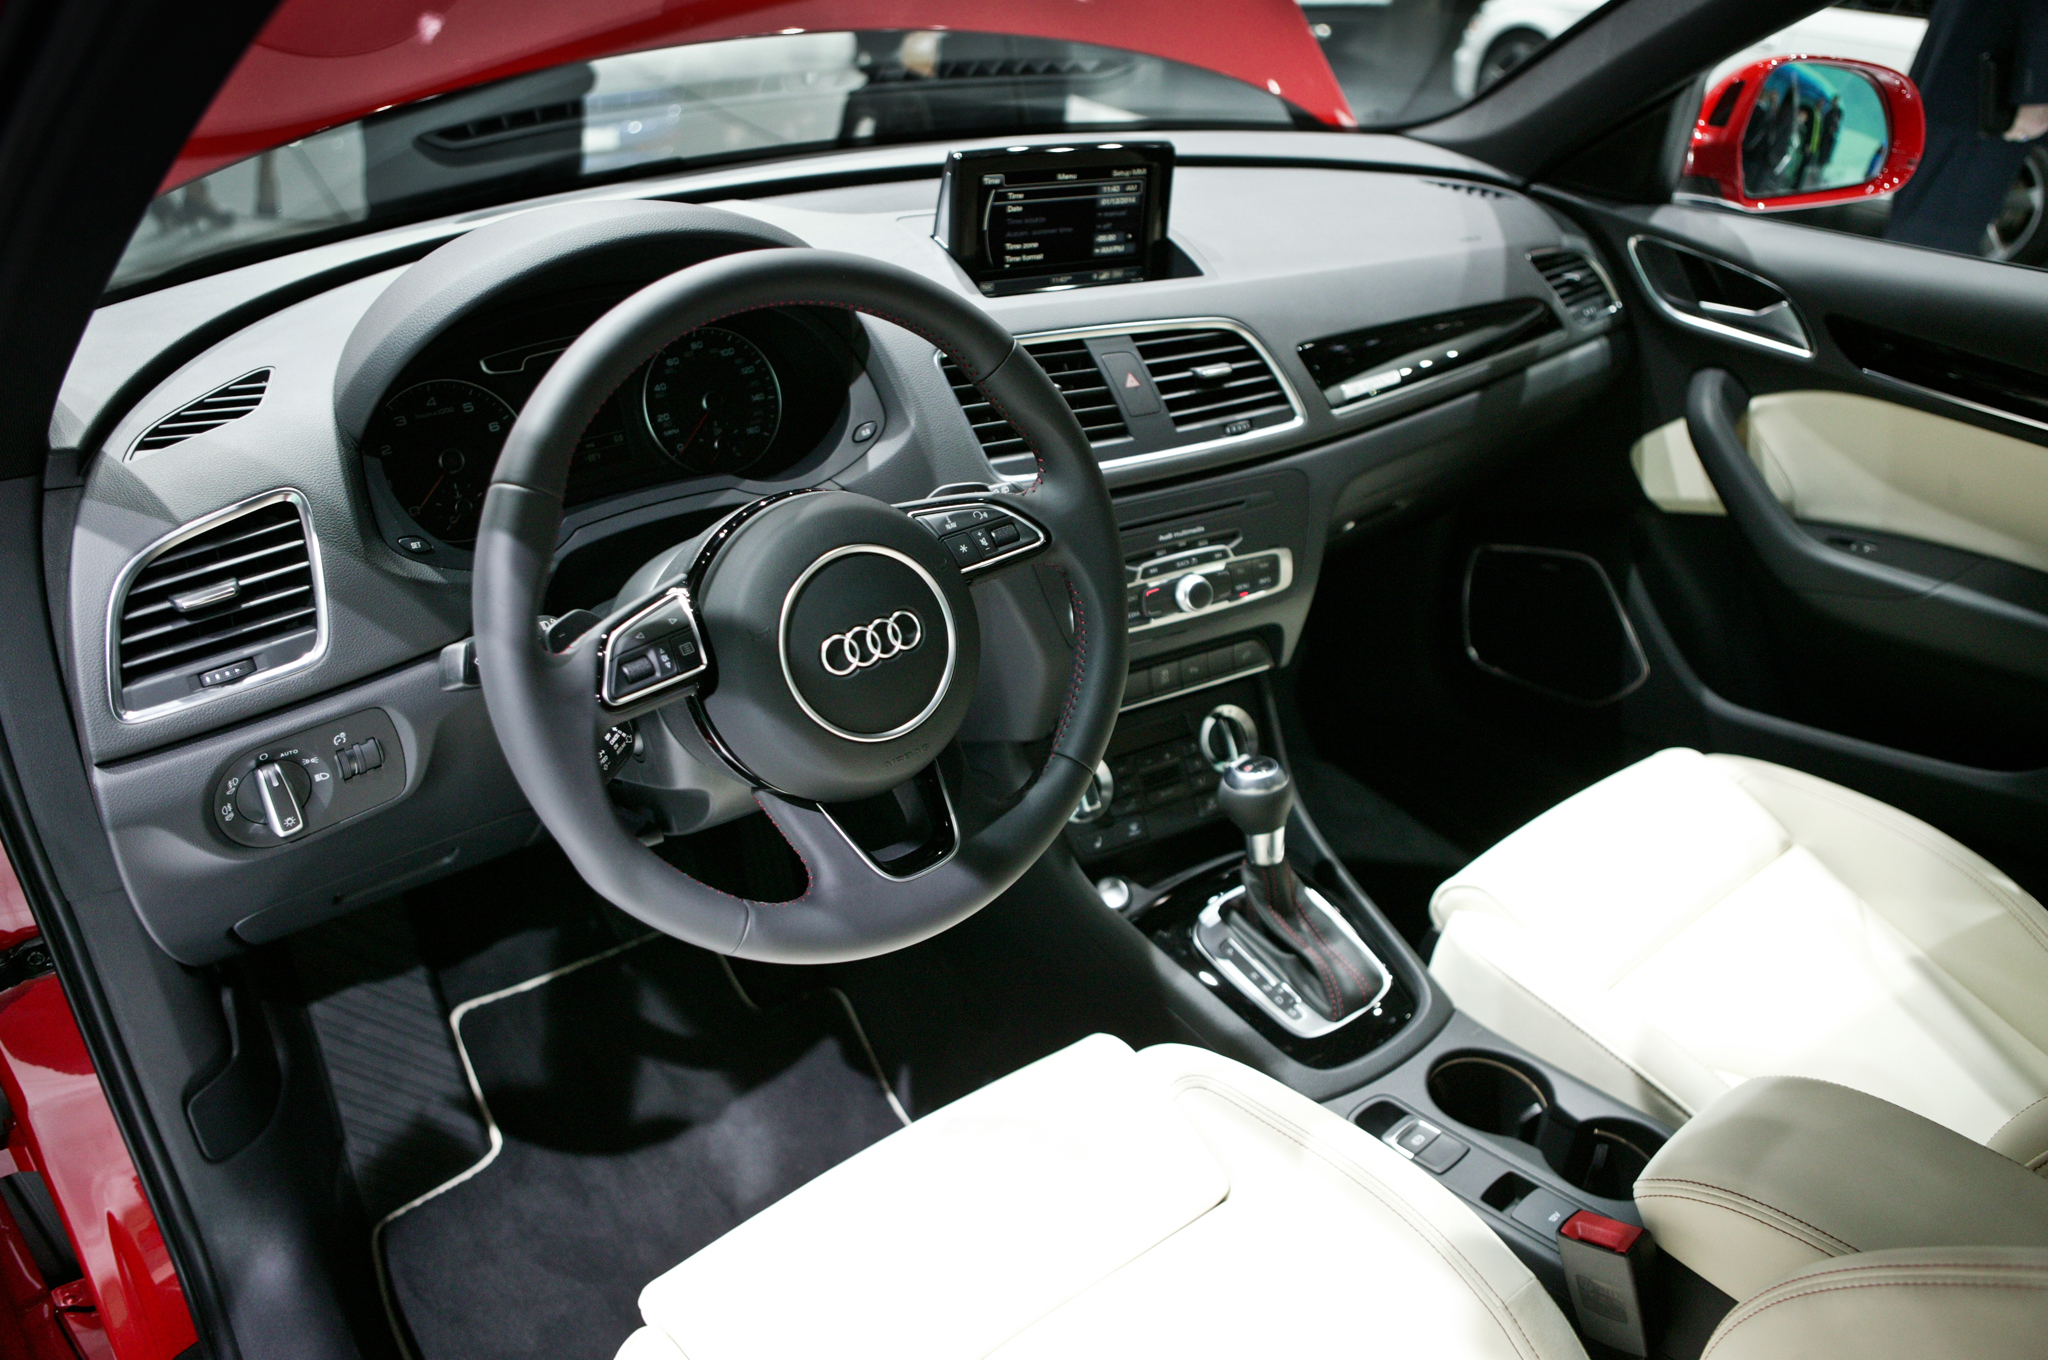 2015 Audi Q3 Dashboard and Cockpit